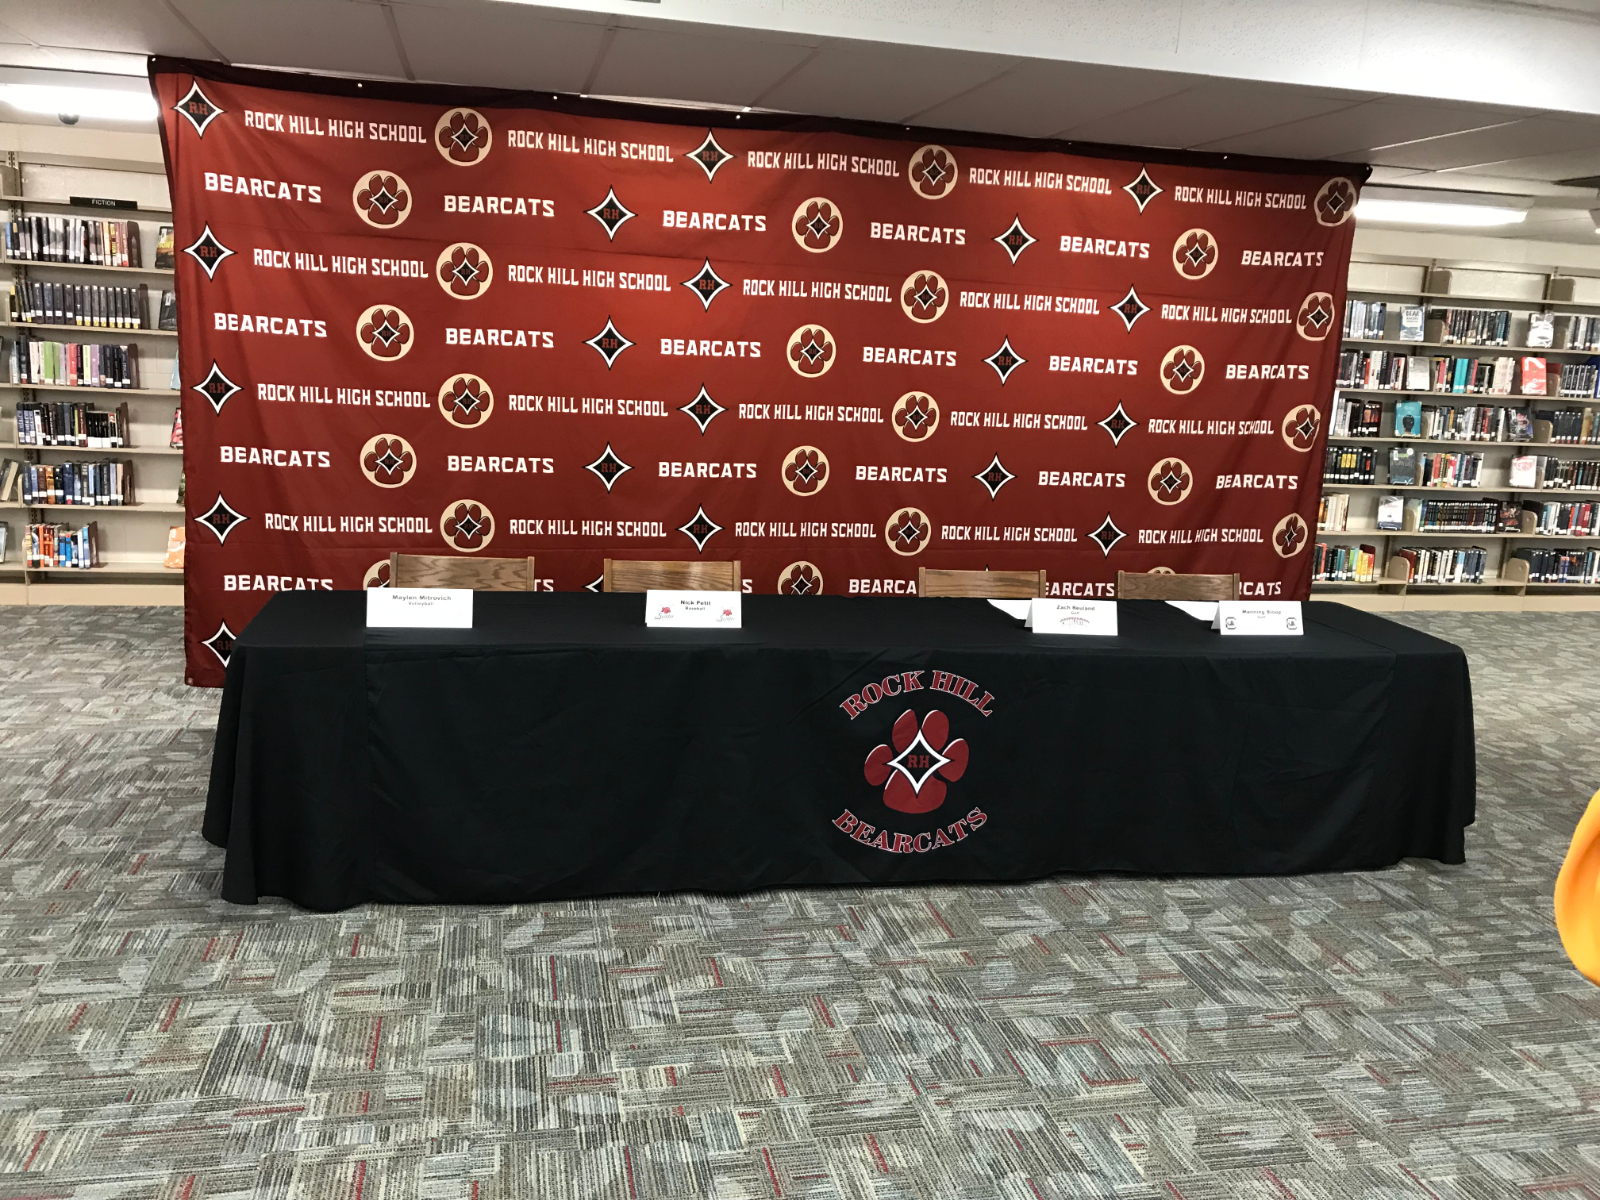 Rock Hill High School Announces 12 Student Athletes Sign to Play at Next Level